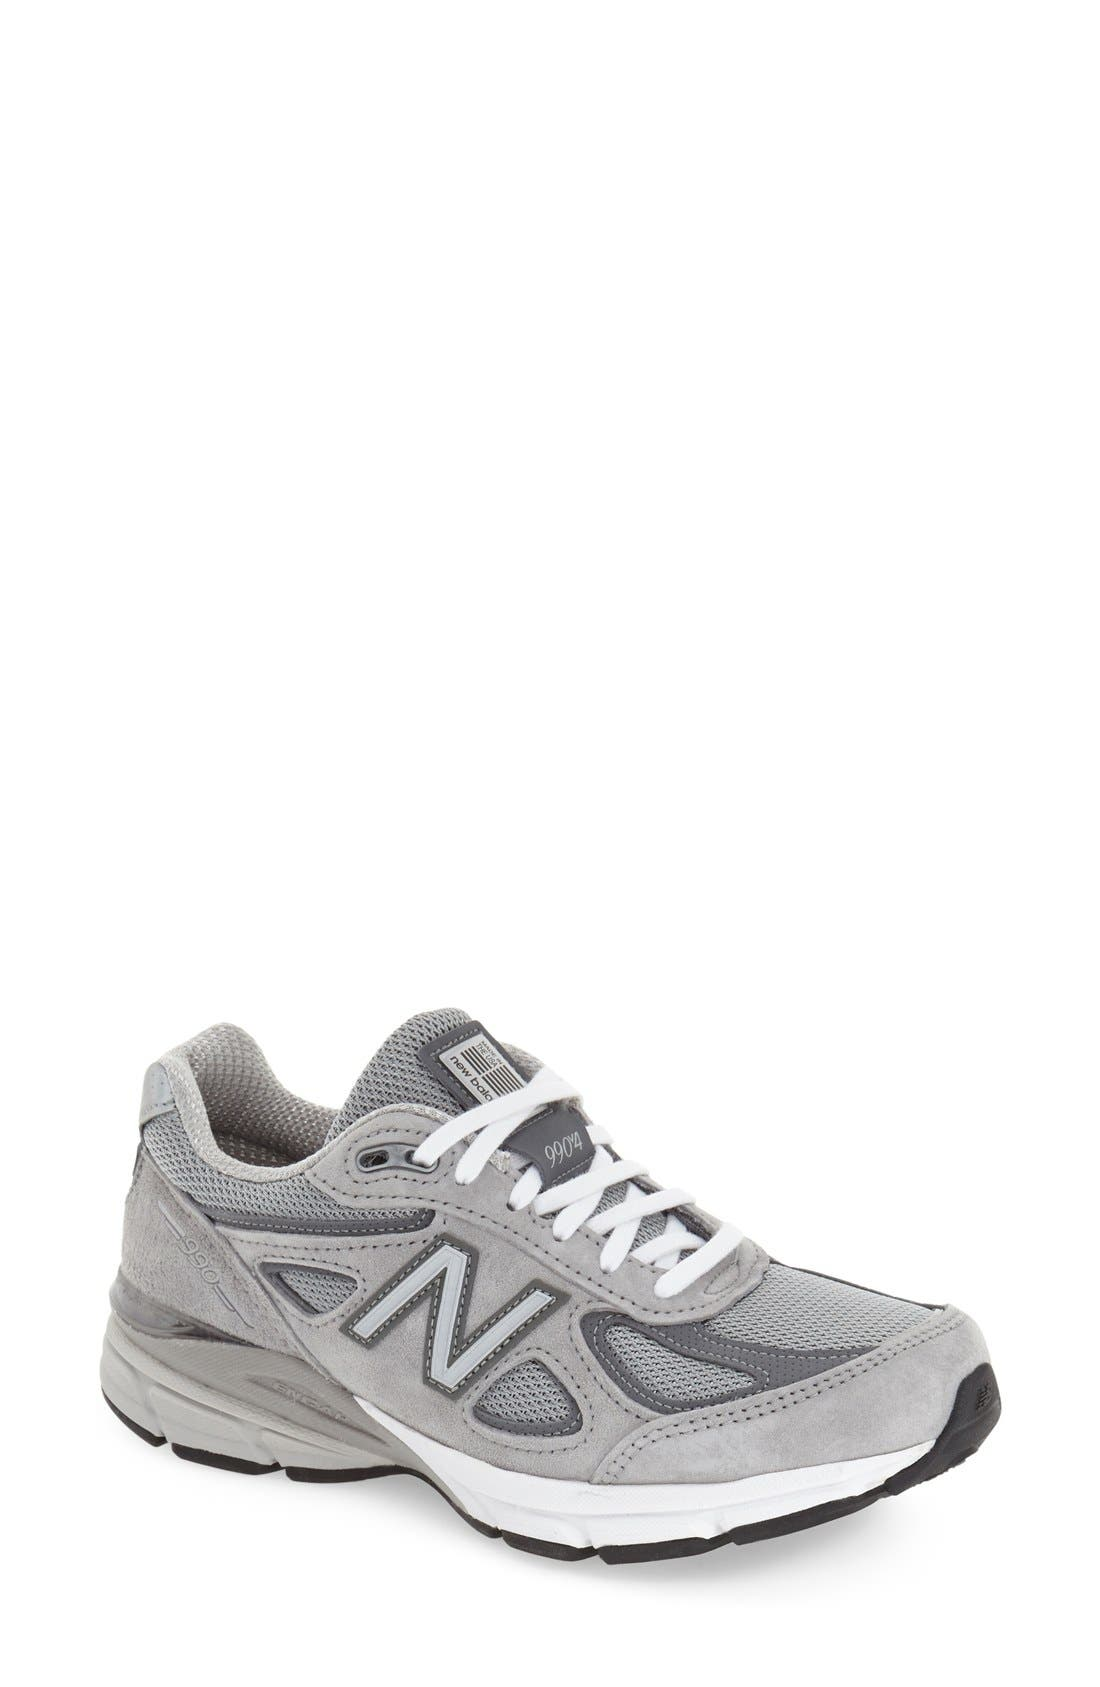 '990 Premium' Running Shoe,                             Main thumbnail 1, color,                             COOL GREY